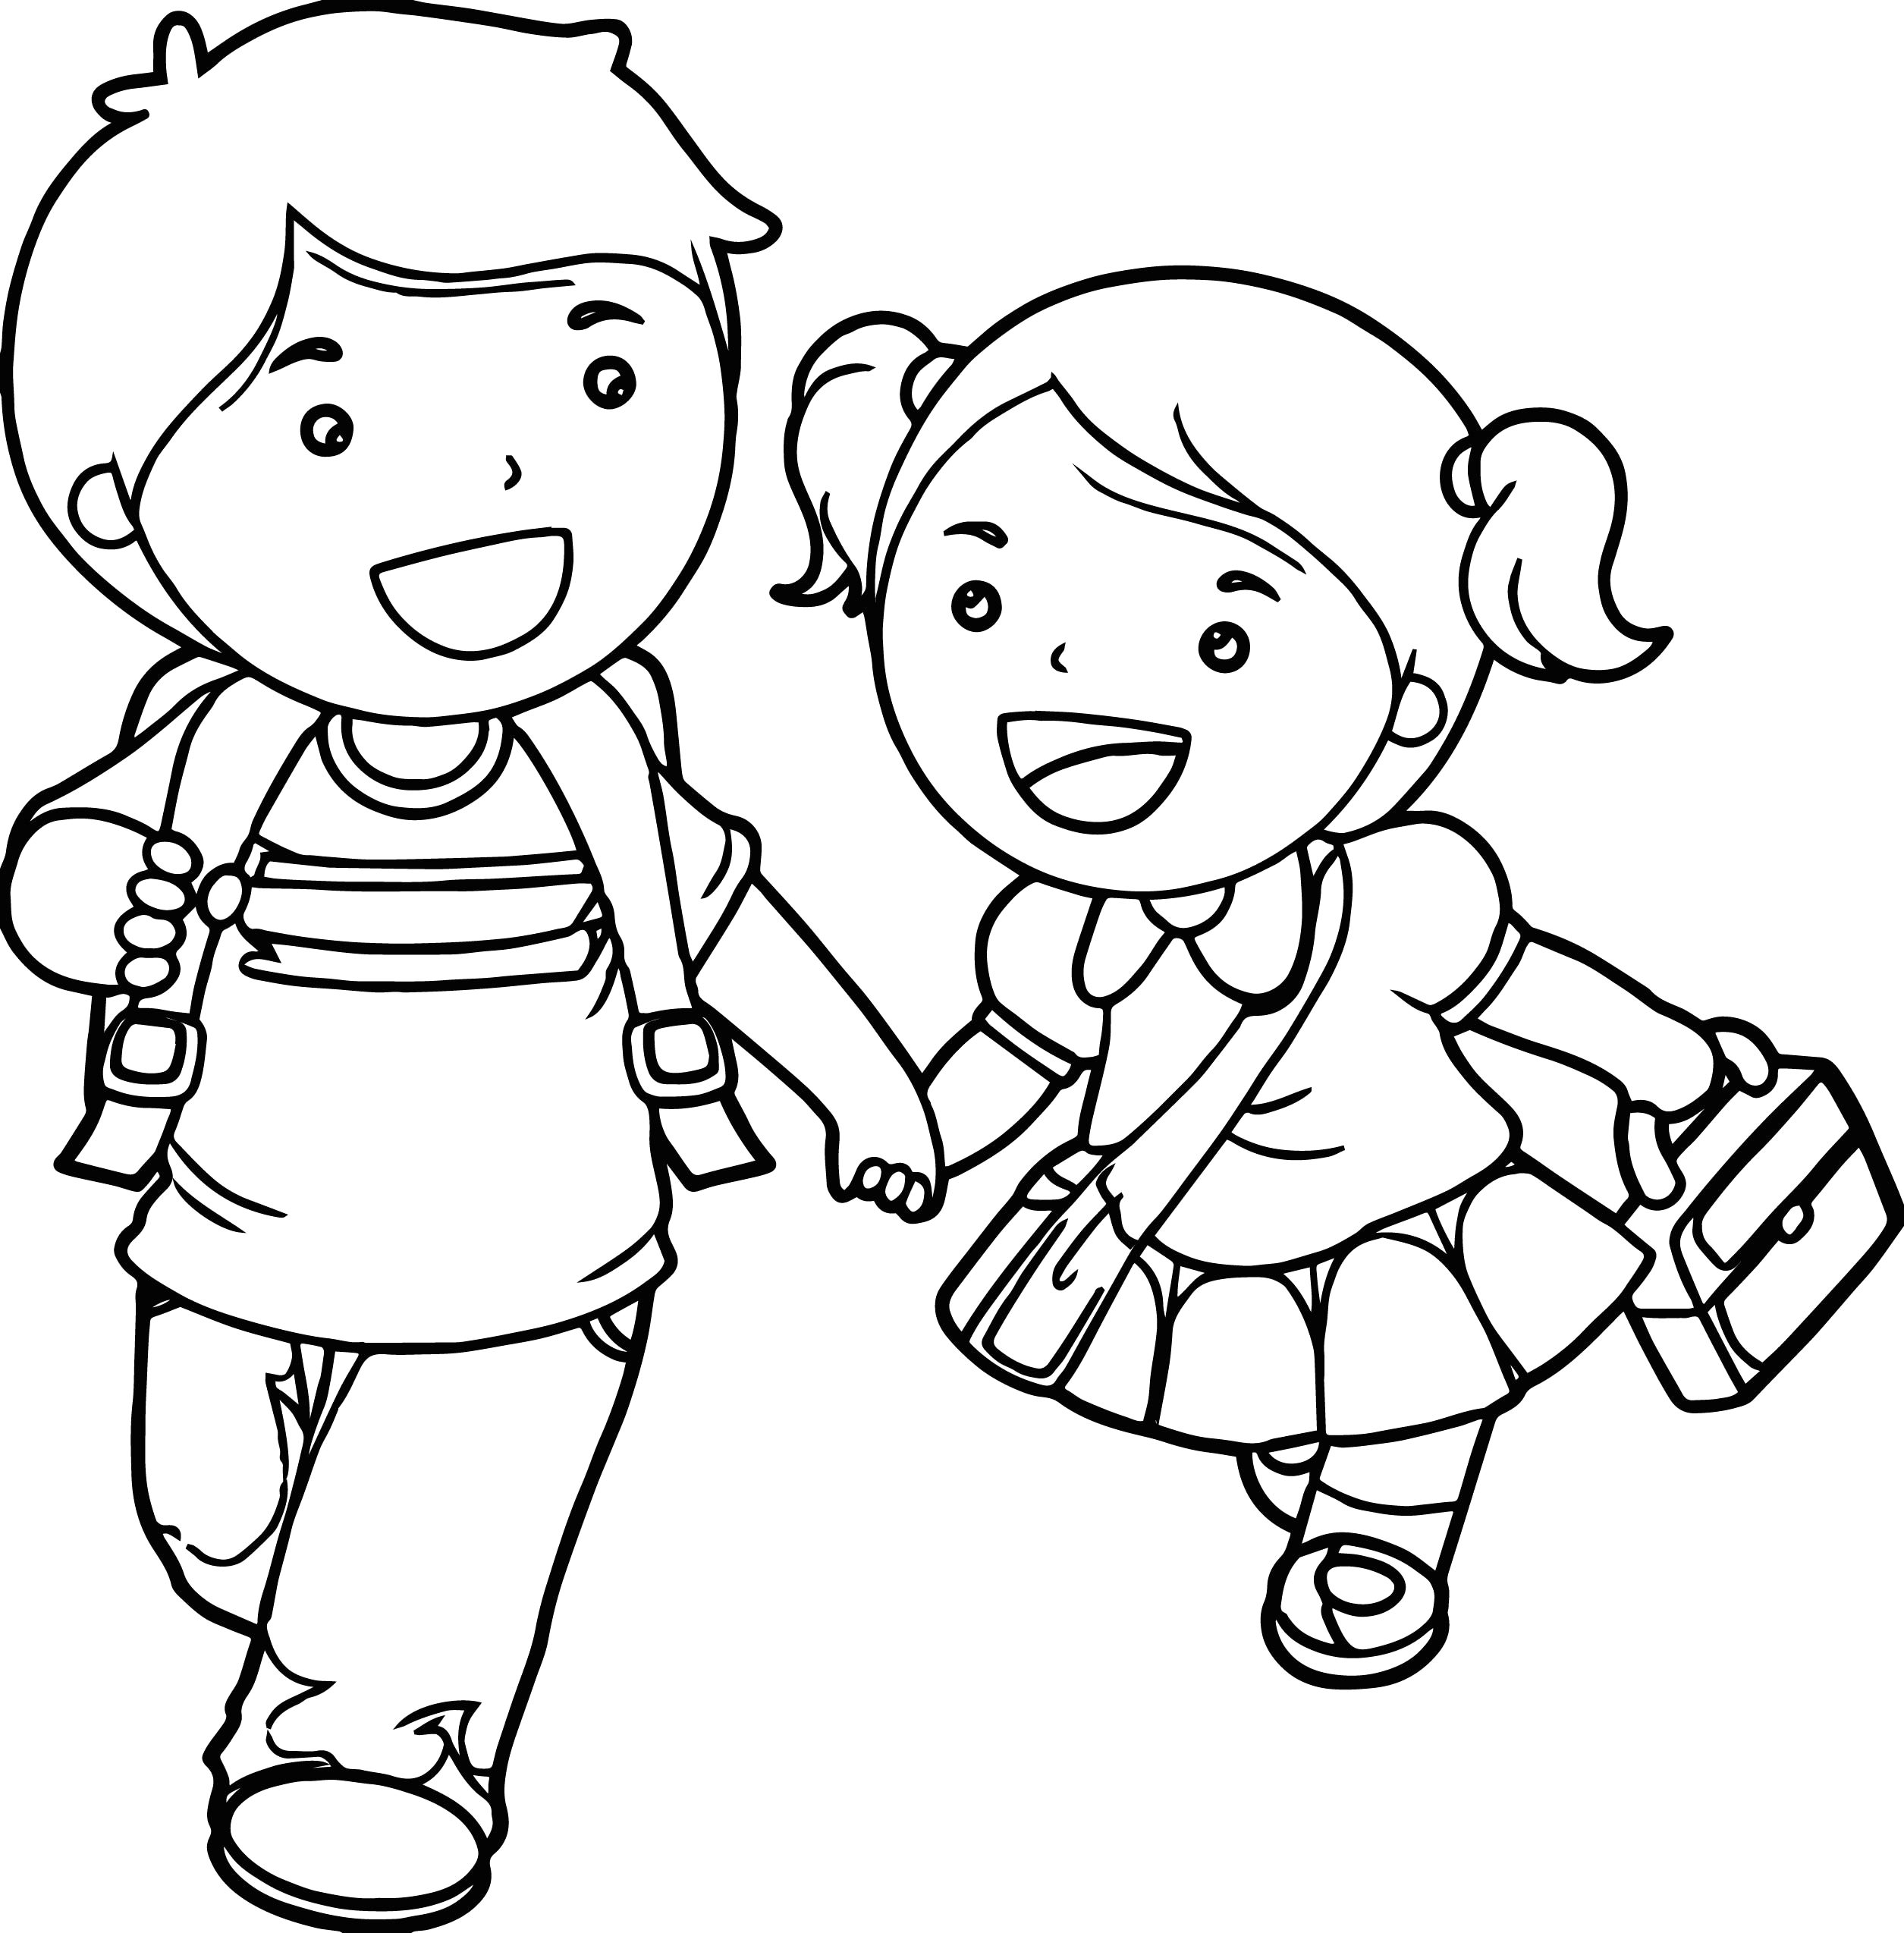 Coloring Pages Of A Boy and Girl Little Boy and Girl Coloring Pages at Getcolorings